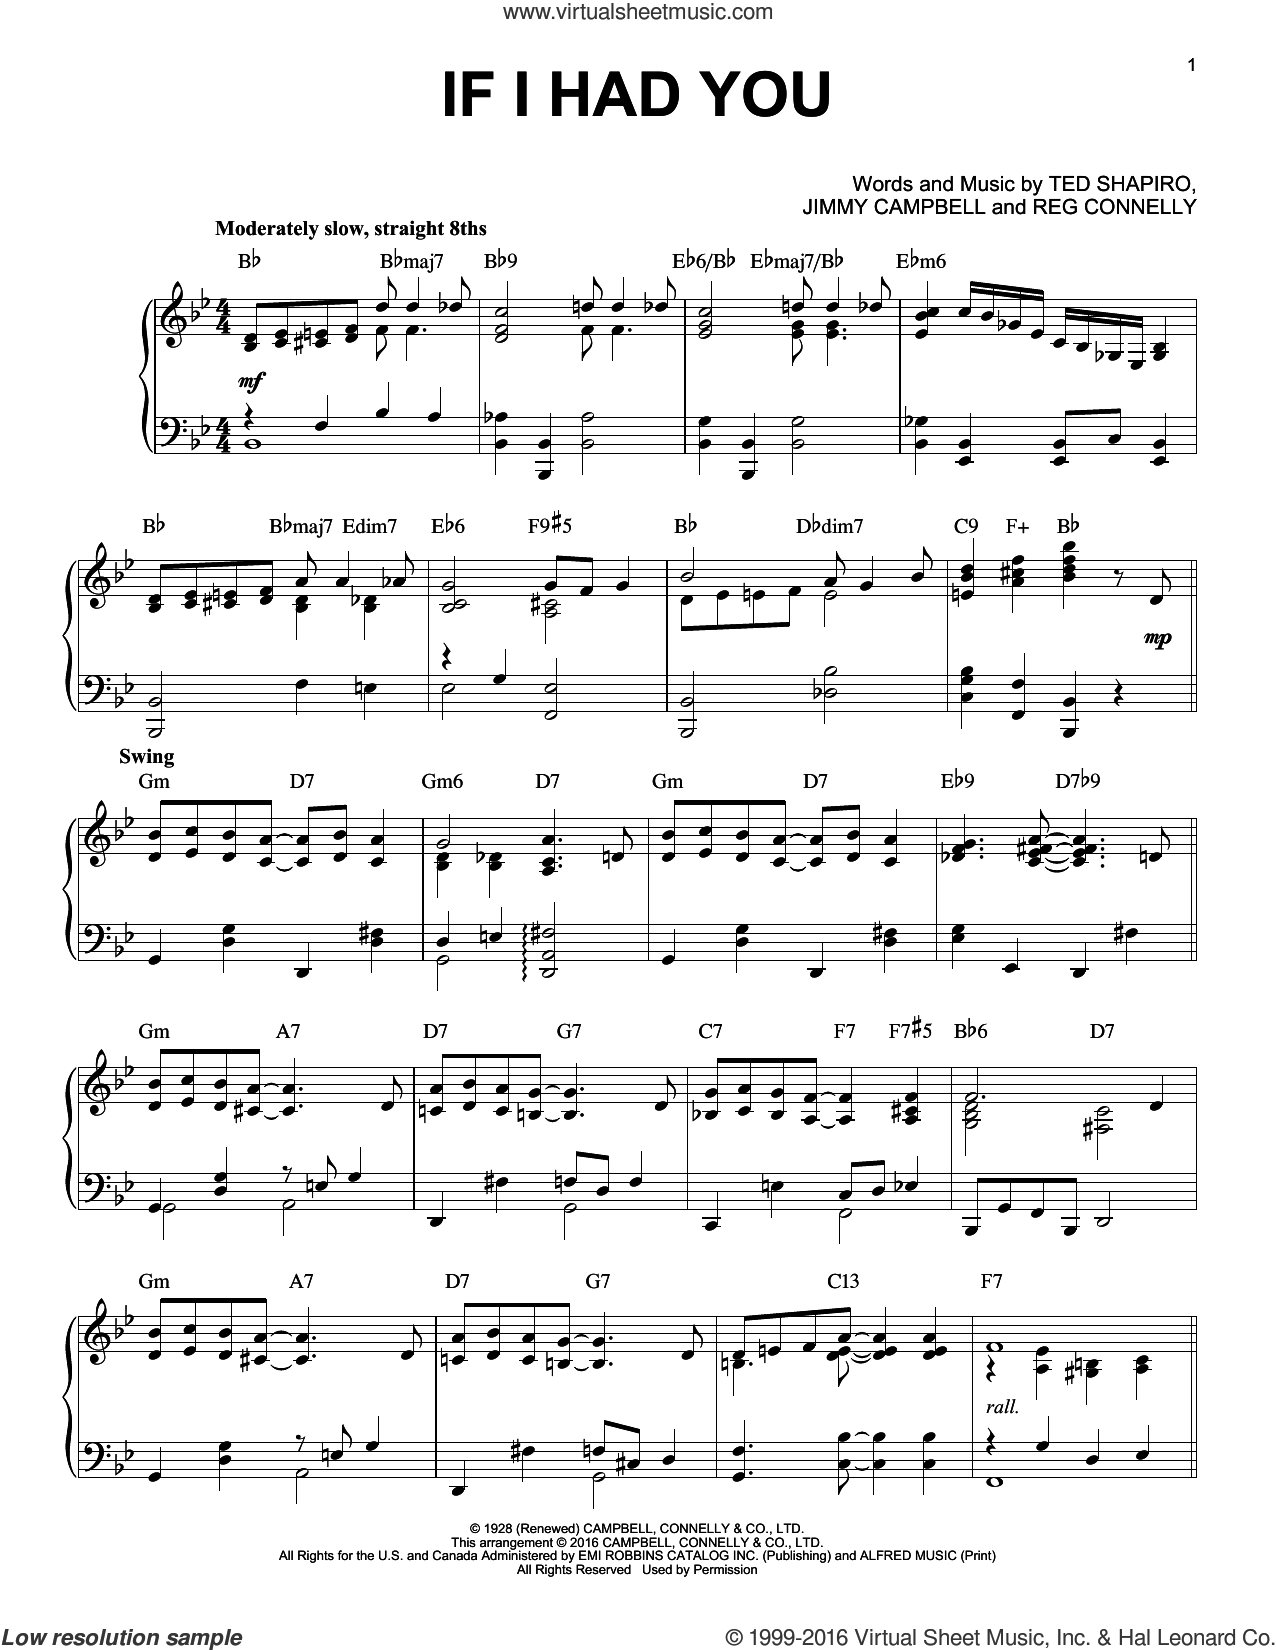 If I Had You [Jazz version] (arr. Brent Edstrom) sheet music for piano solo by Frank Sinatra, Jimmy Campbell, Reg Connelly and Ted Shapiro, intermediate skill level